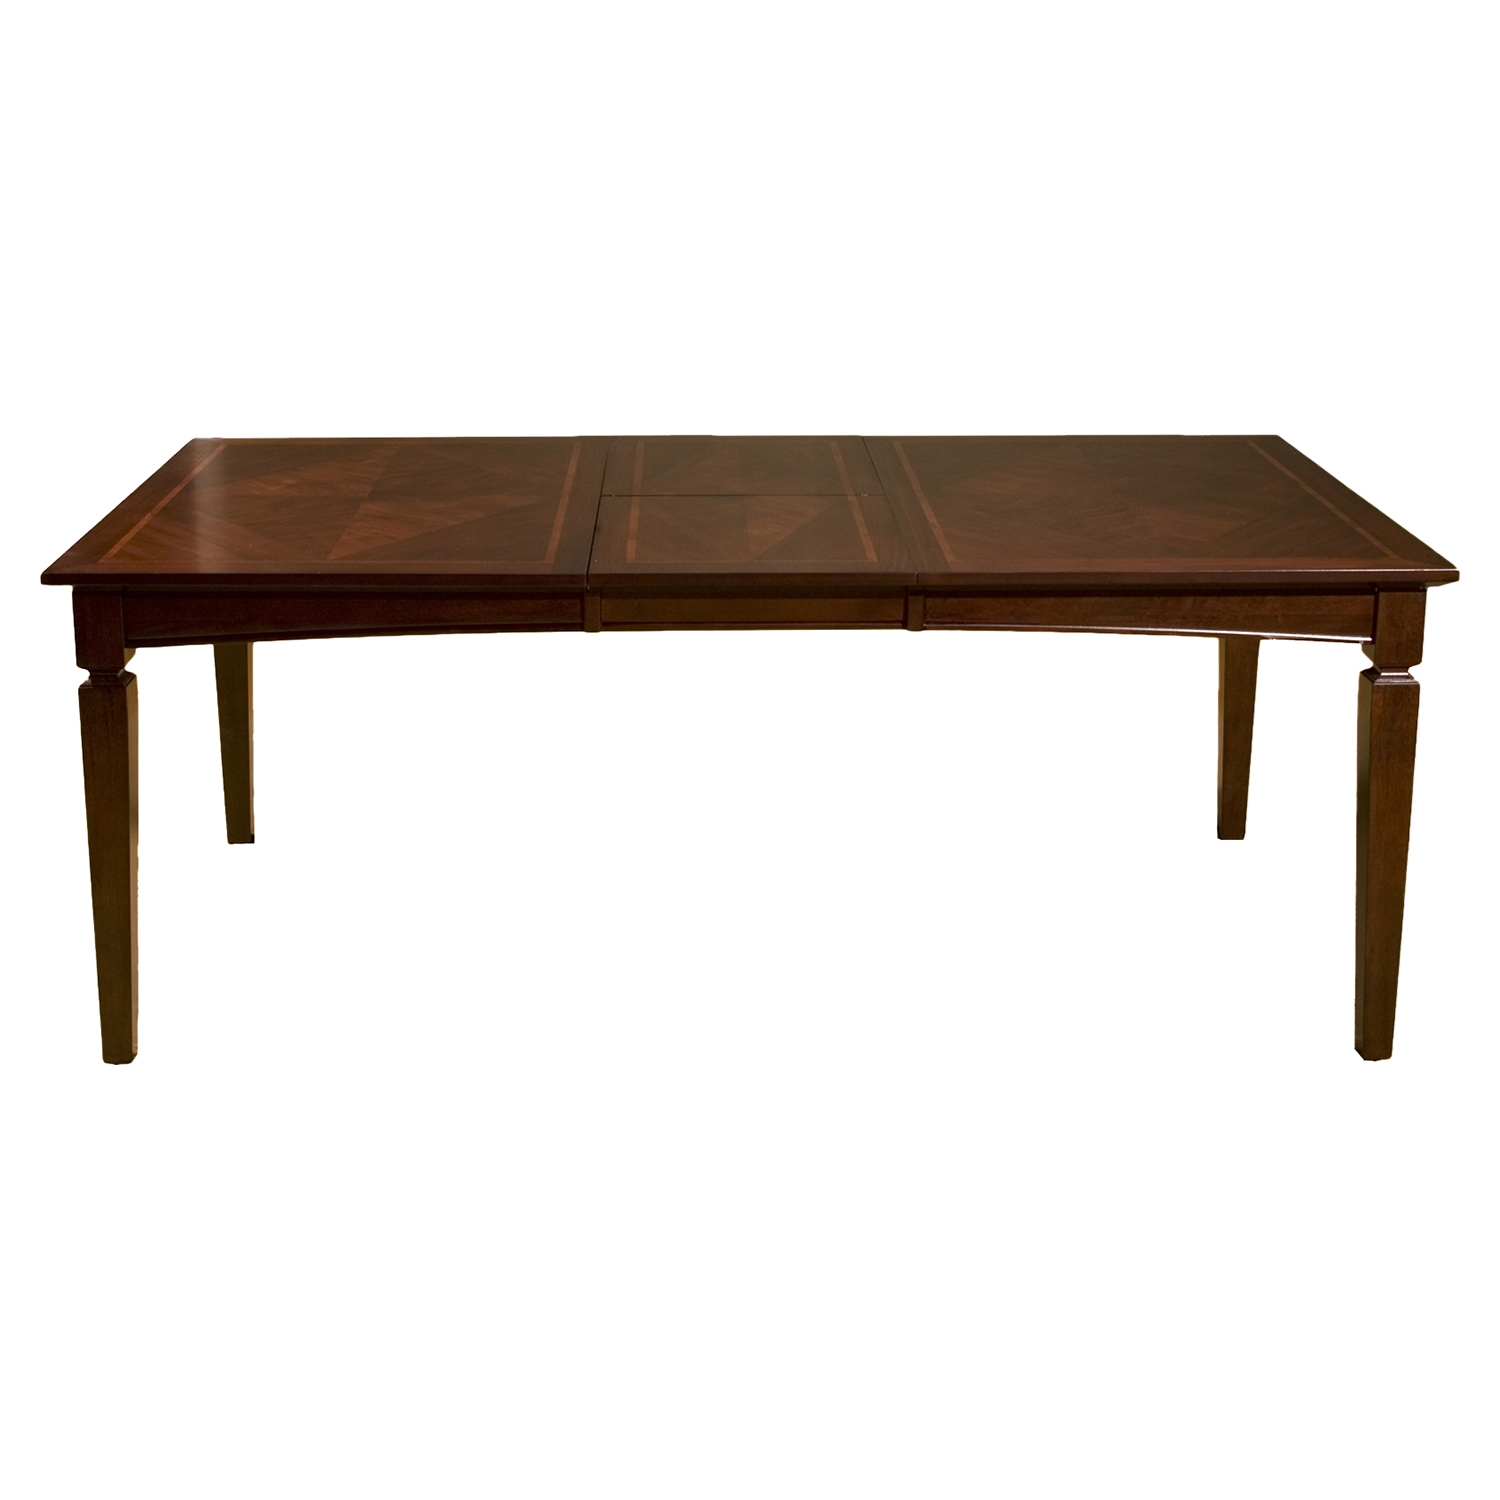 Charmant Antioch Extension Dining Table   Butterfly Leaf, Medium Cherry    ALP 8933 01 ...